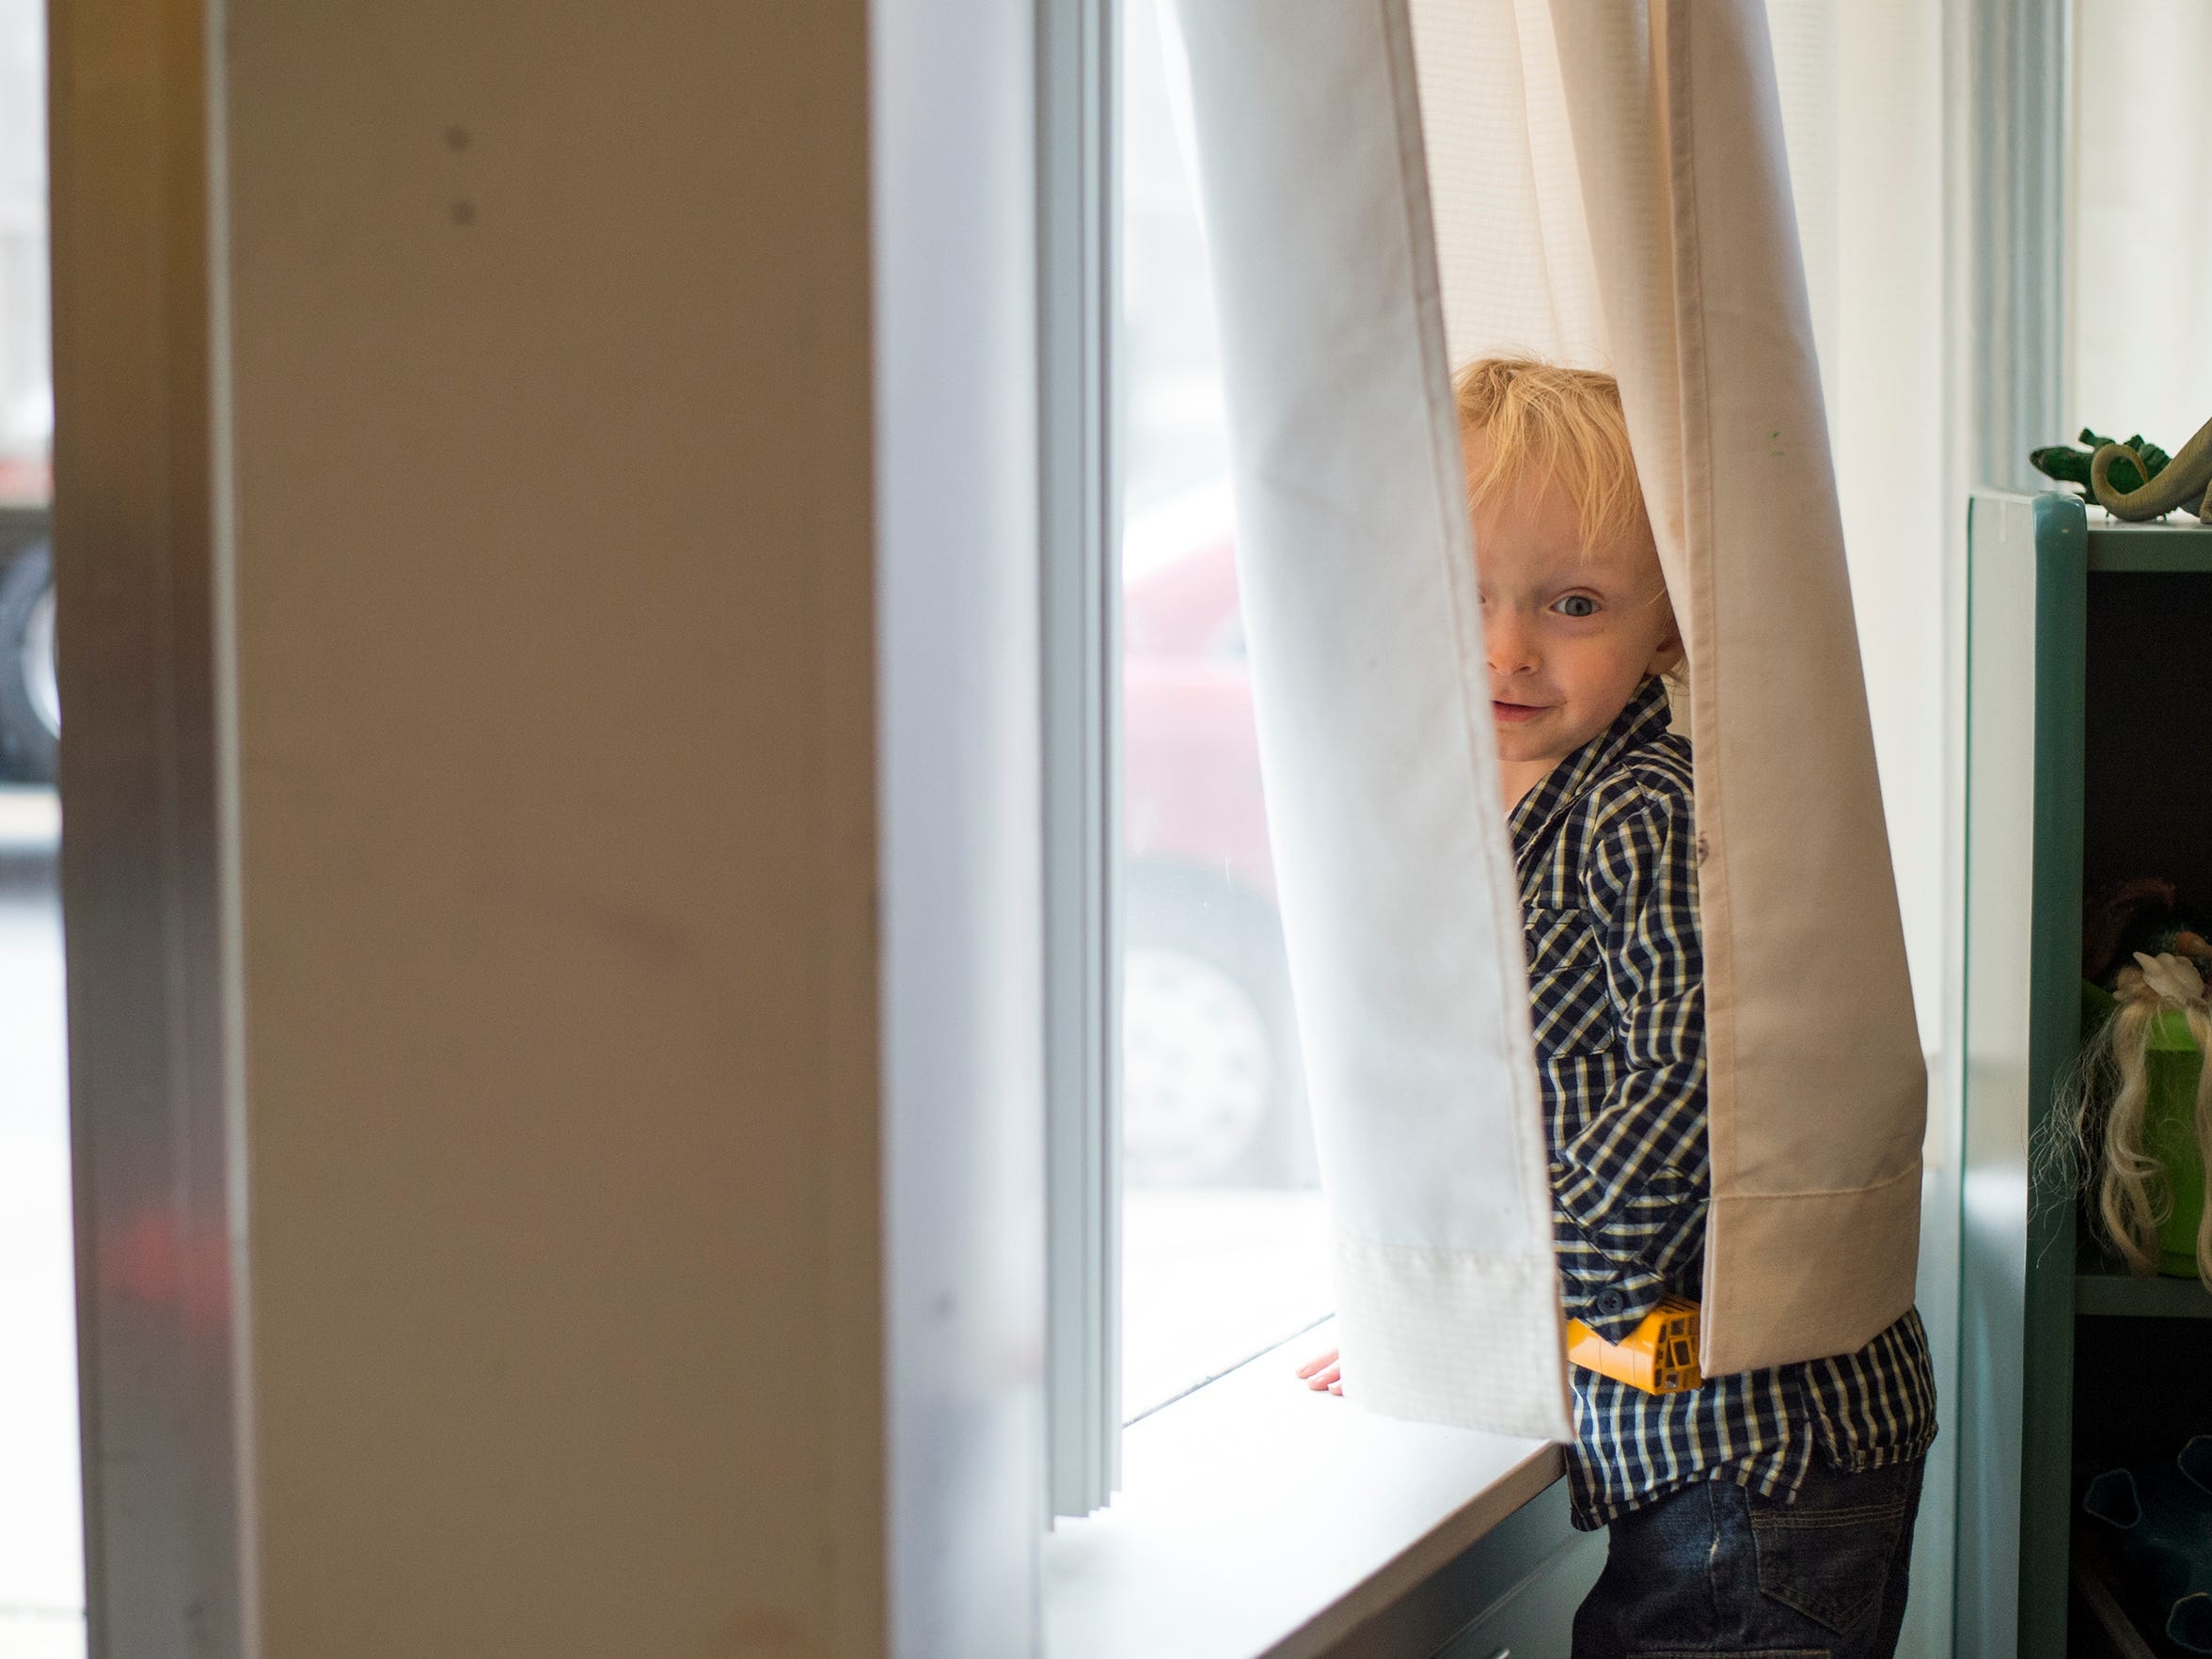 Two-year-old Eli peeks out from behind the curtains while playing at the Family Resource Center in Owego.